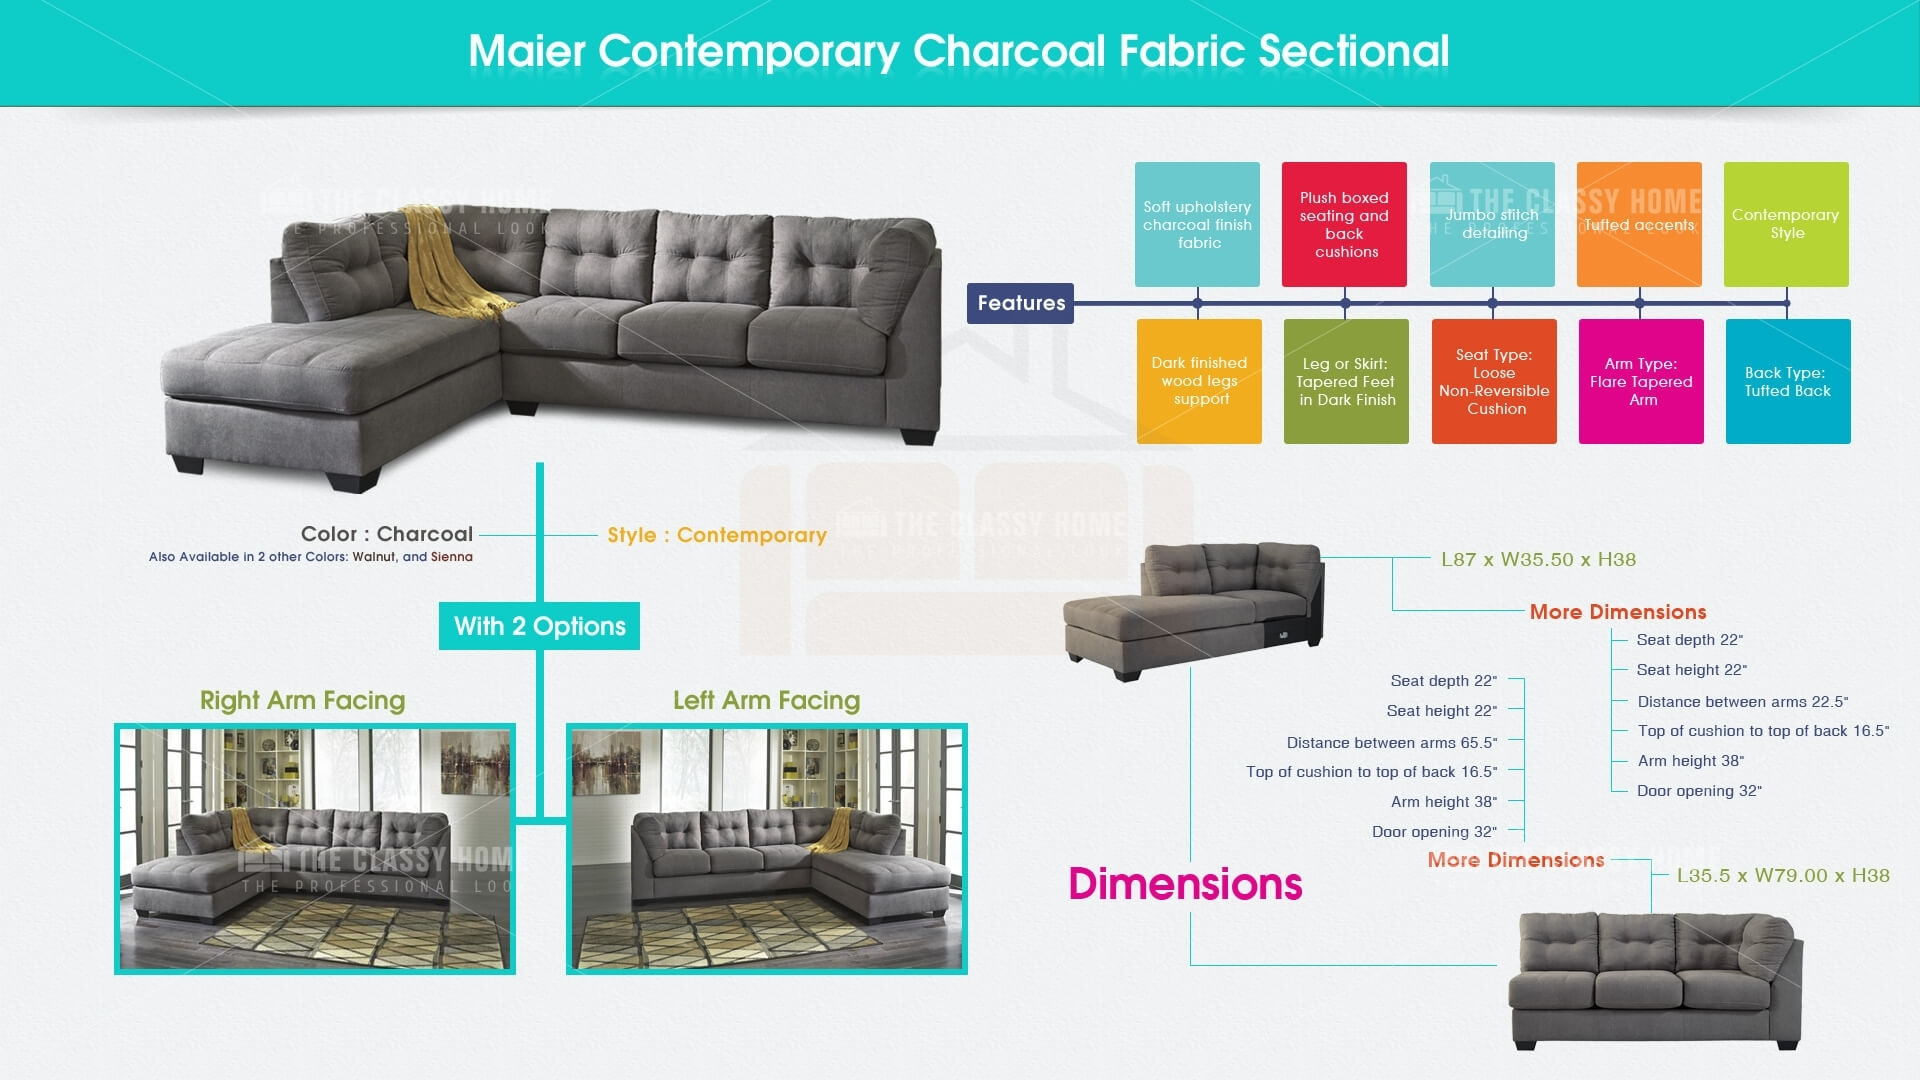 Ashley Furniture Maier Charcoal Raf Chaise Sectional | The Classy Home throughout Lucy Grey 2 Piece Sectionals With Laf Chaise (Image 5 of 30)